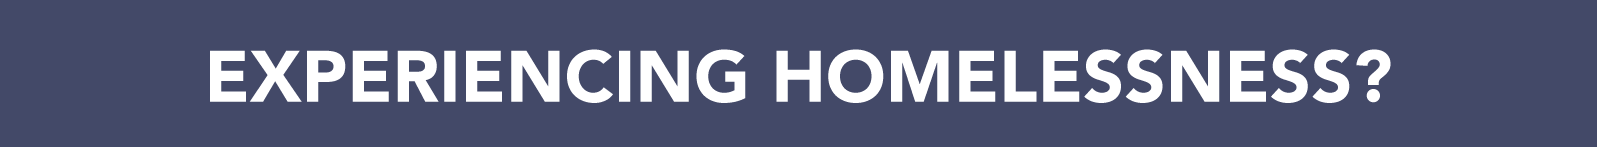 Banner1-Experiencing-Homelessness-.png